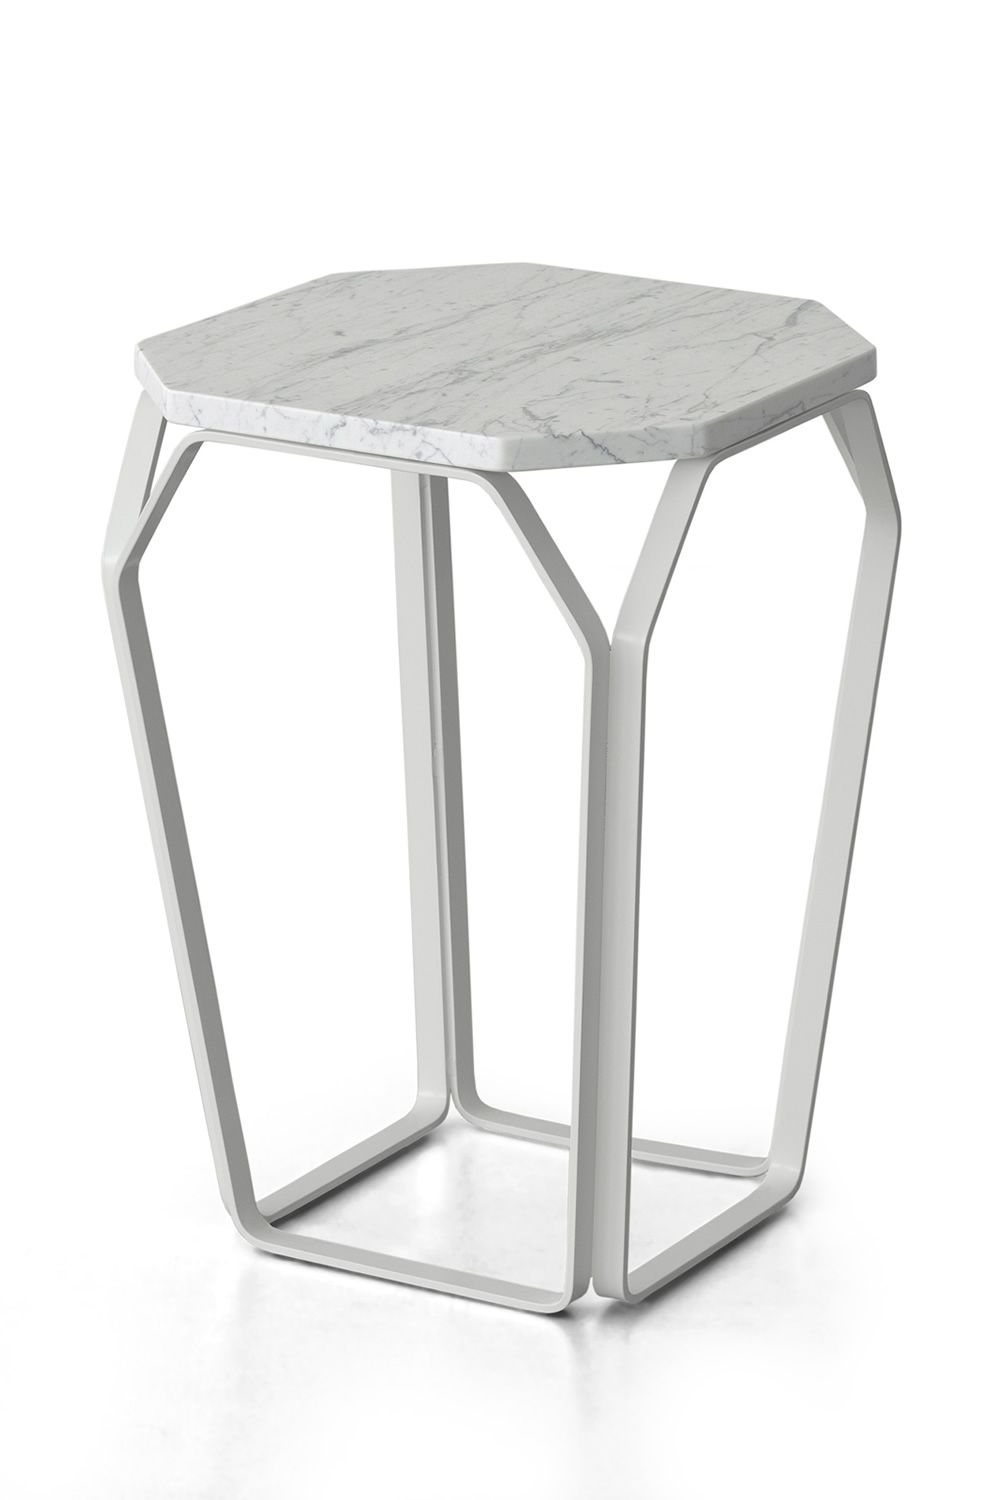 Small squared table in lacquered metal, white color